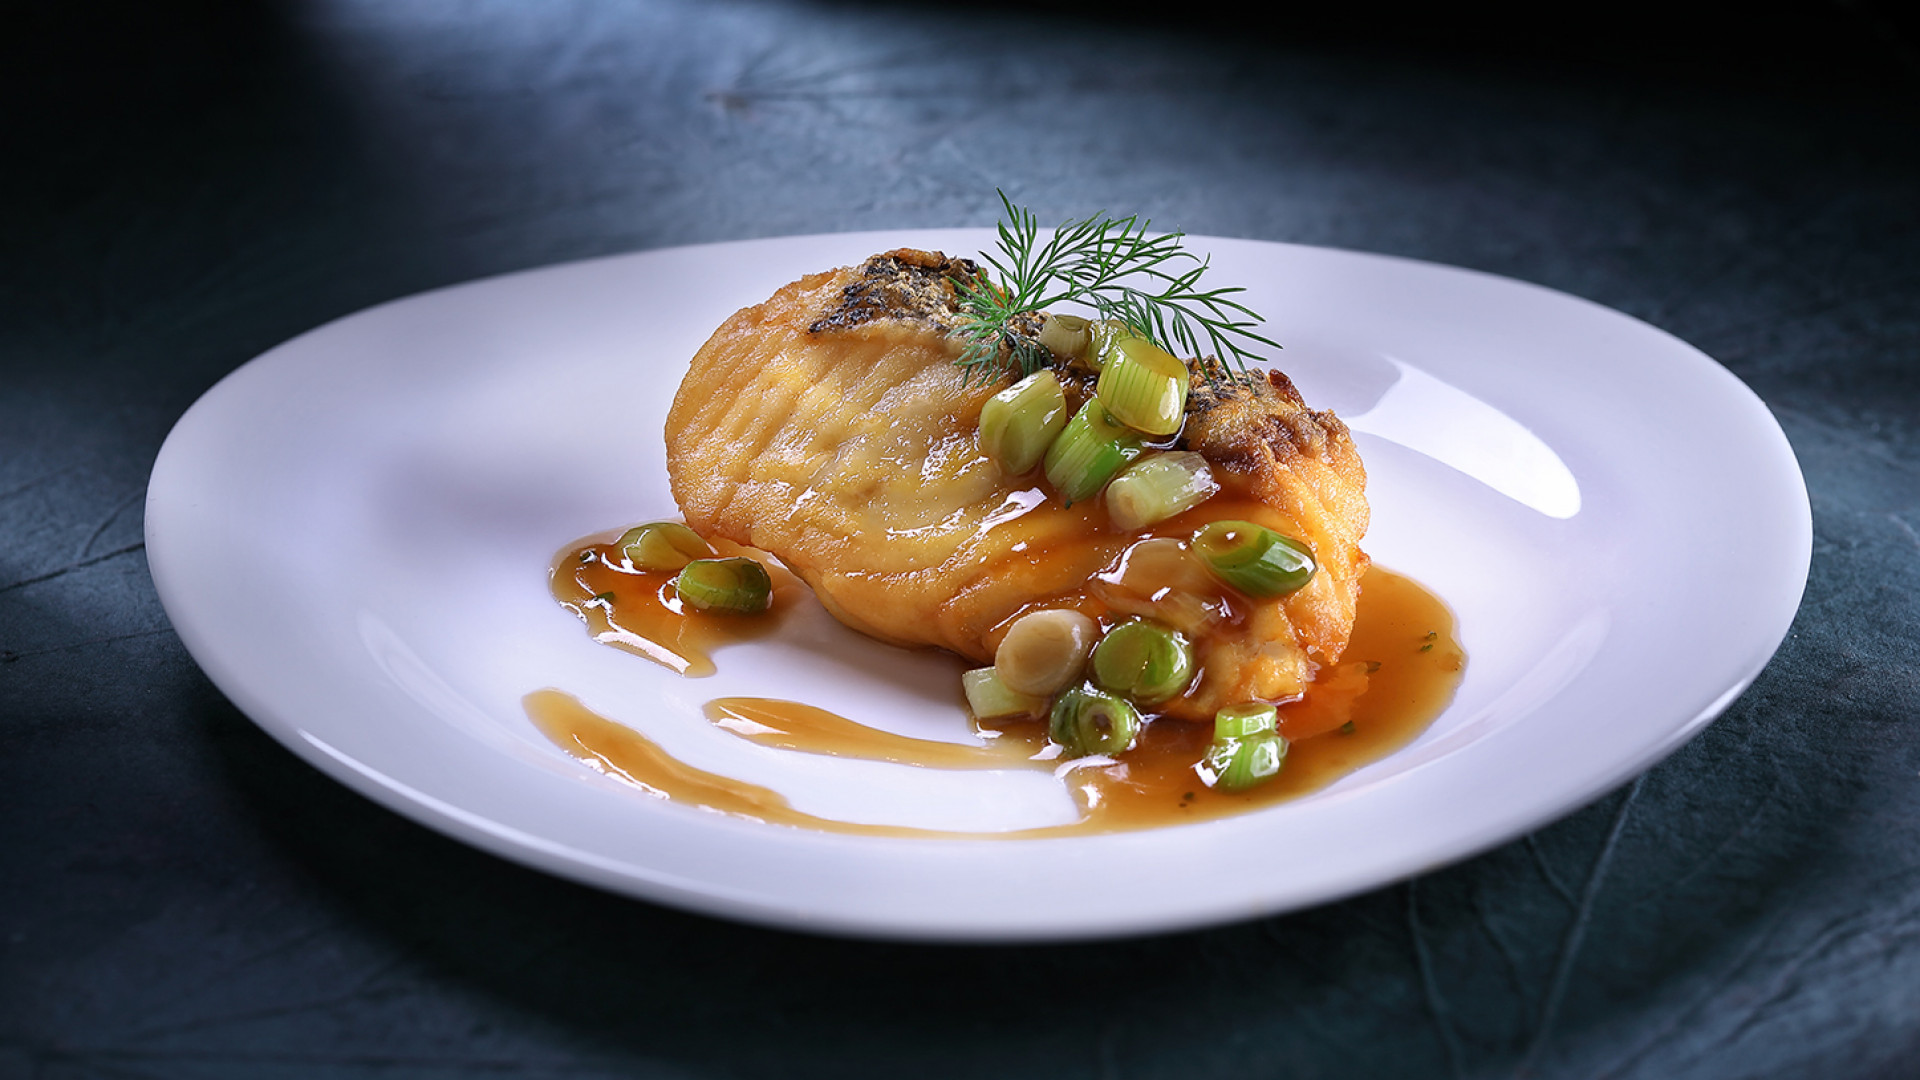 Cod fish fillet with Superior soy sauce